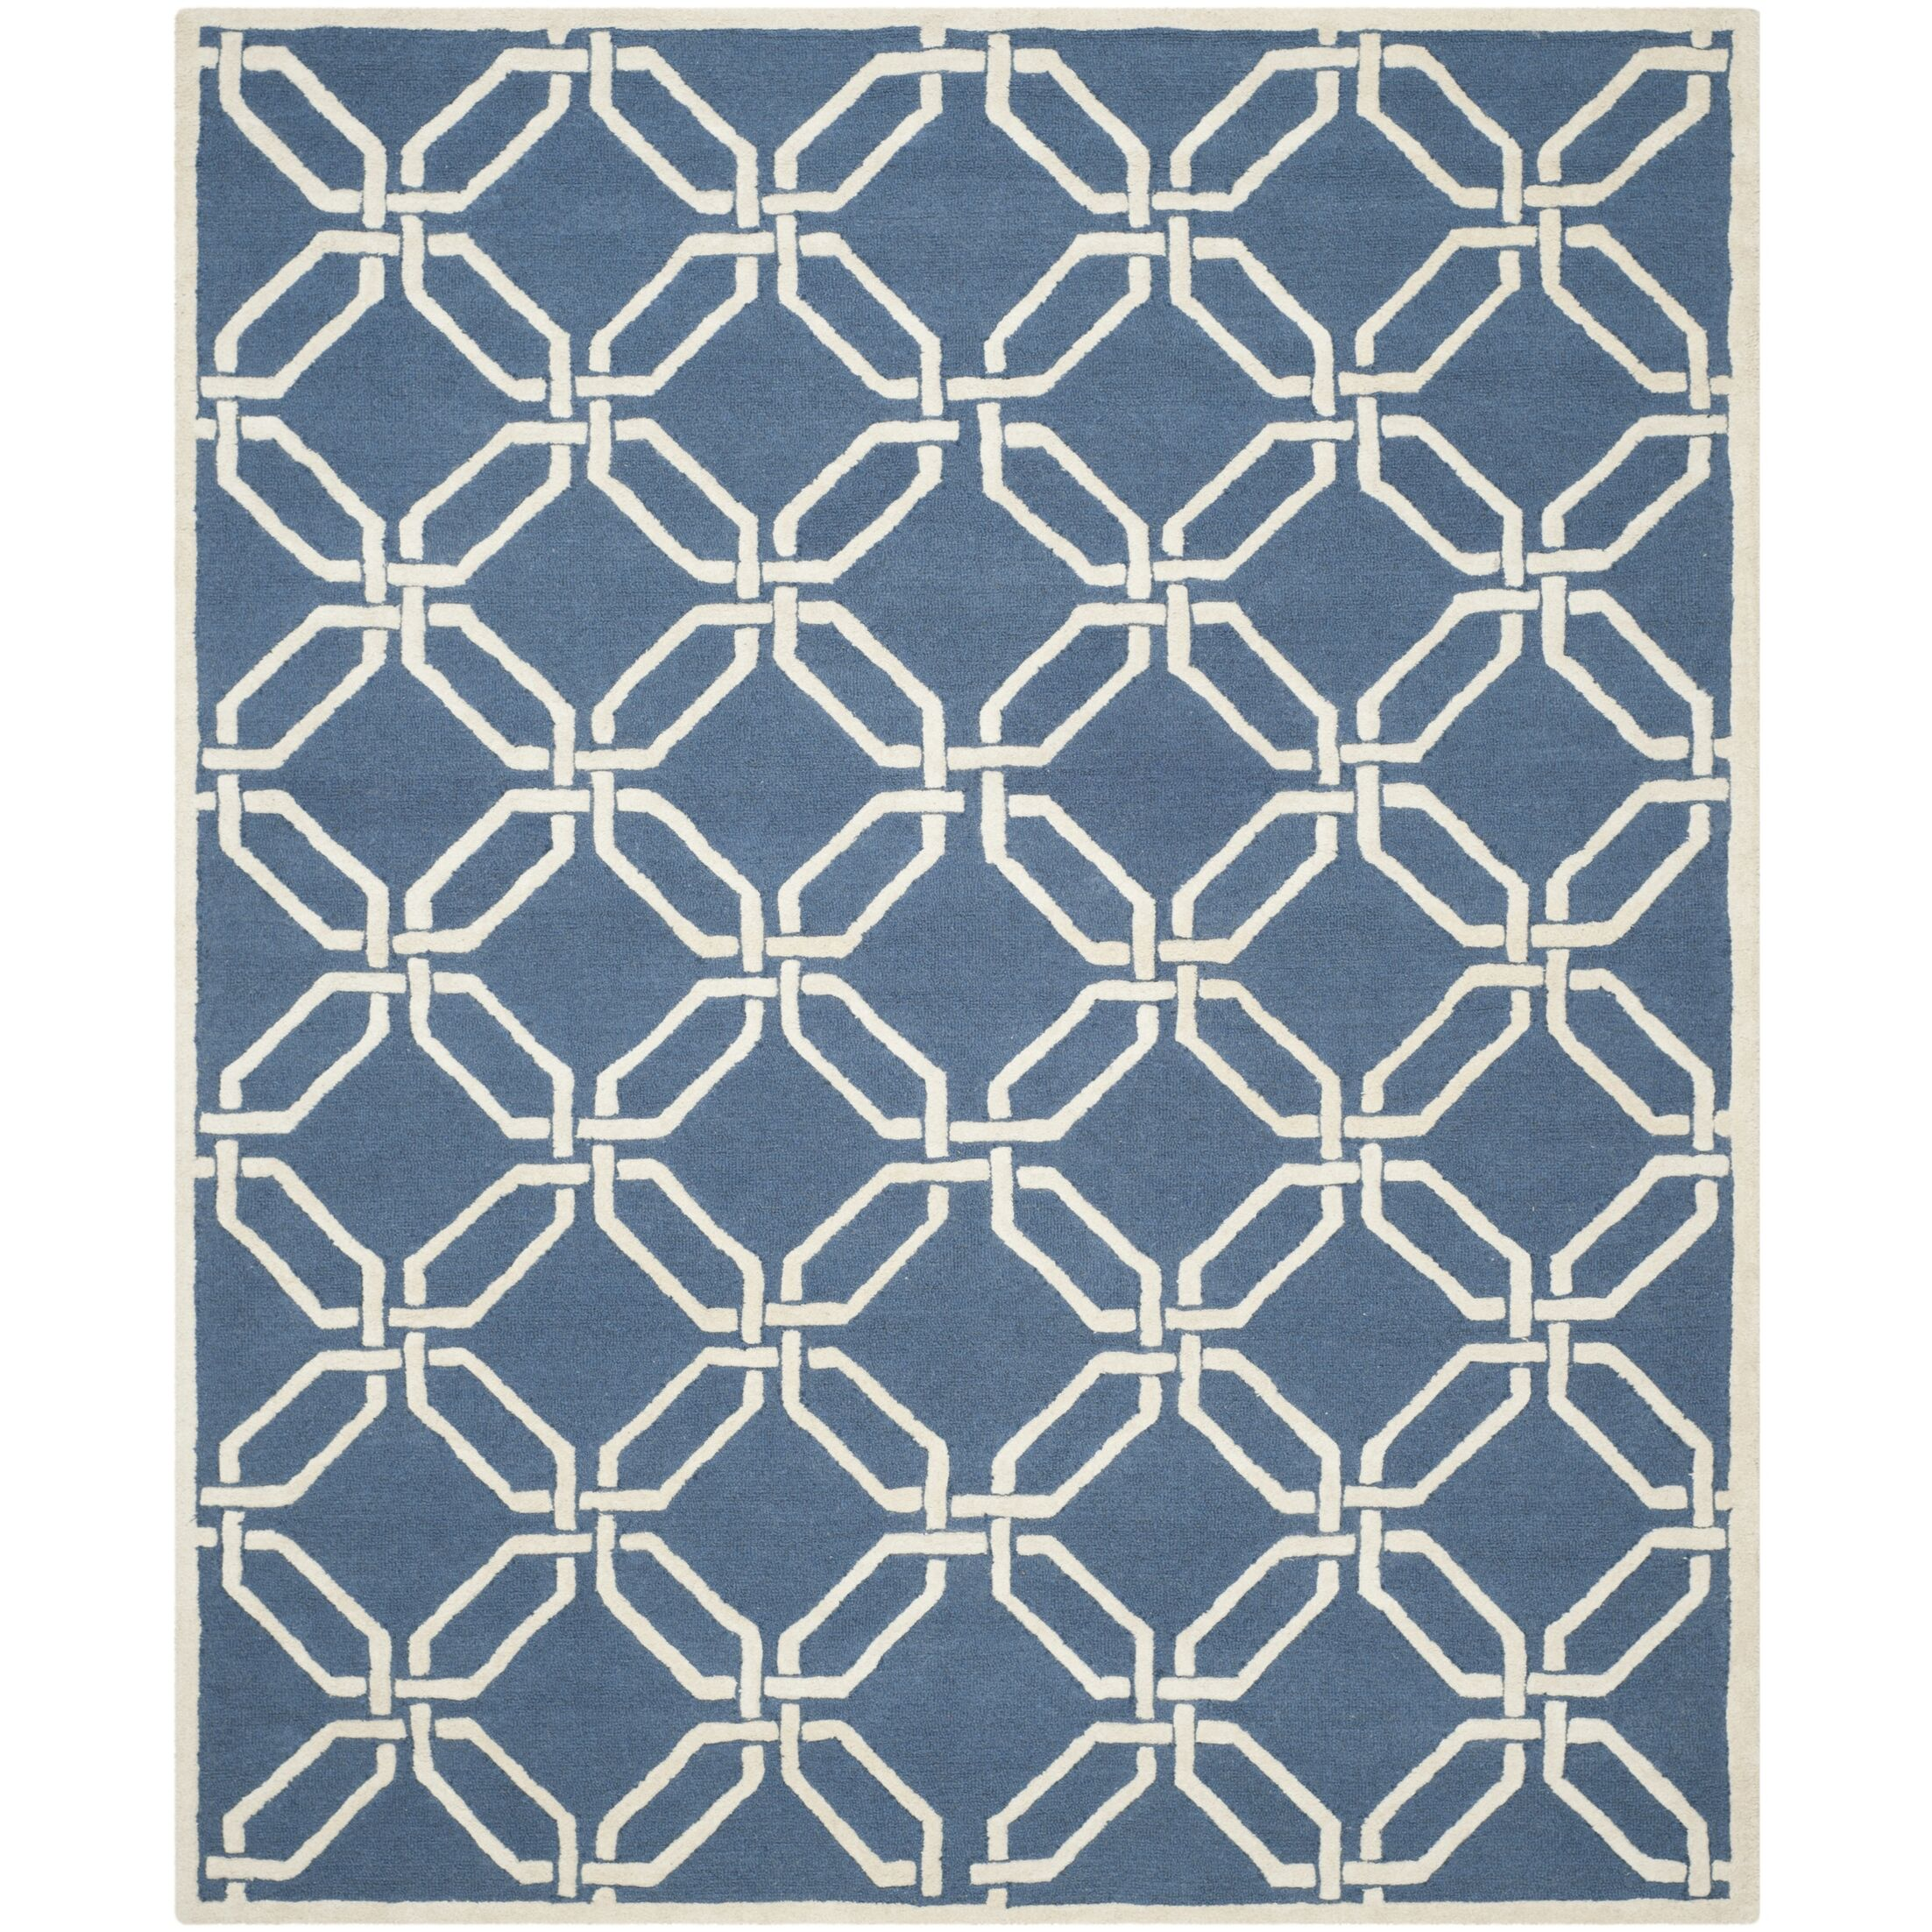 Martins Hand-Tufted Navy/Ivory Area Rug Rug Size: Rectangle 8' x 10'